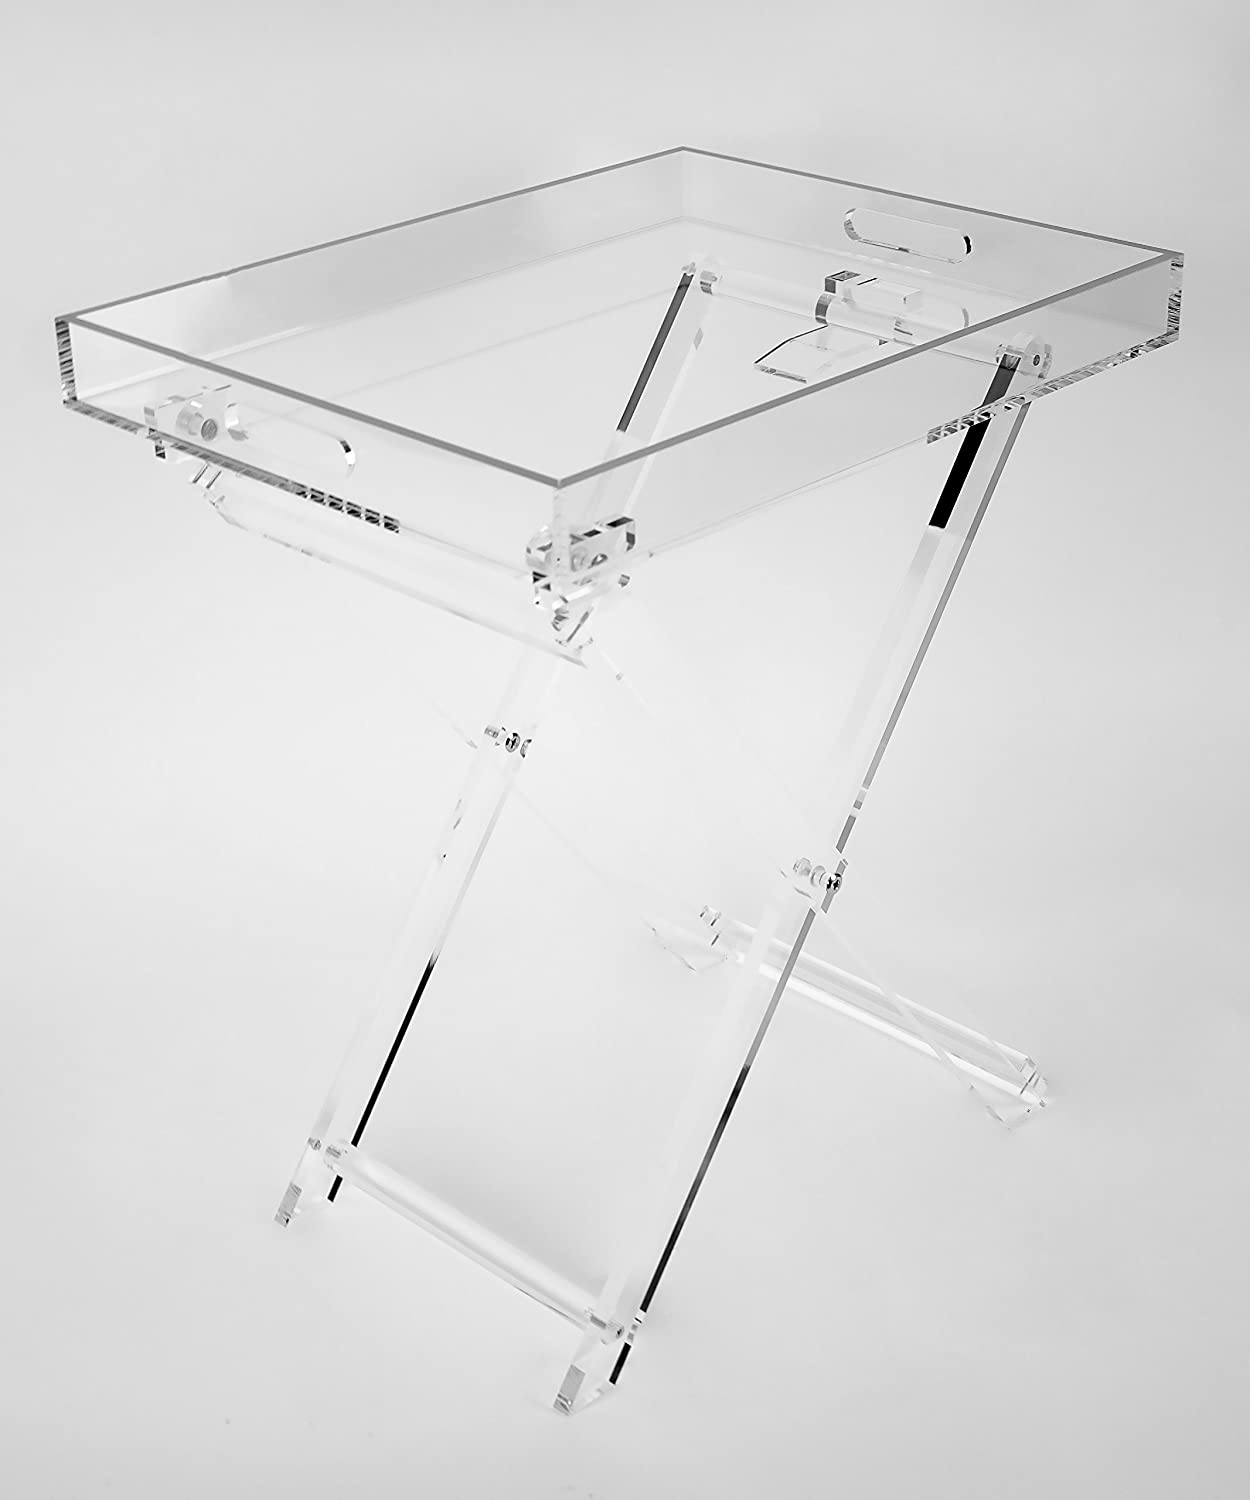 Designstyles Acrylic Decor Fordable Tray Table